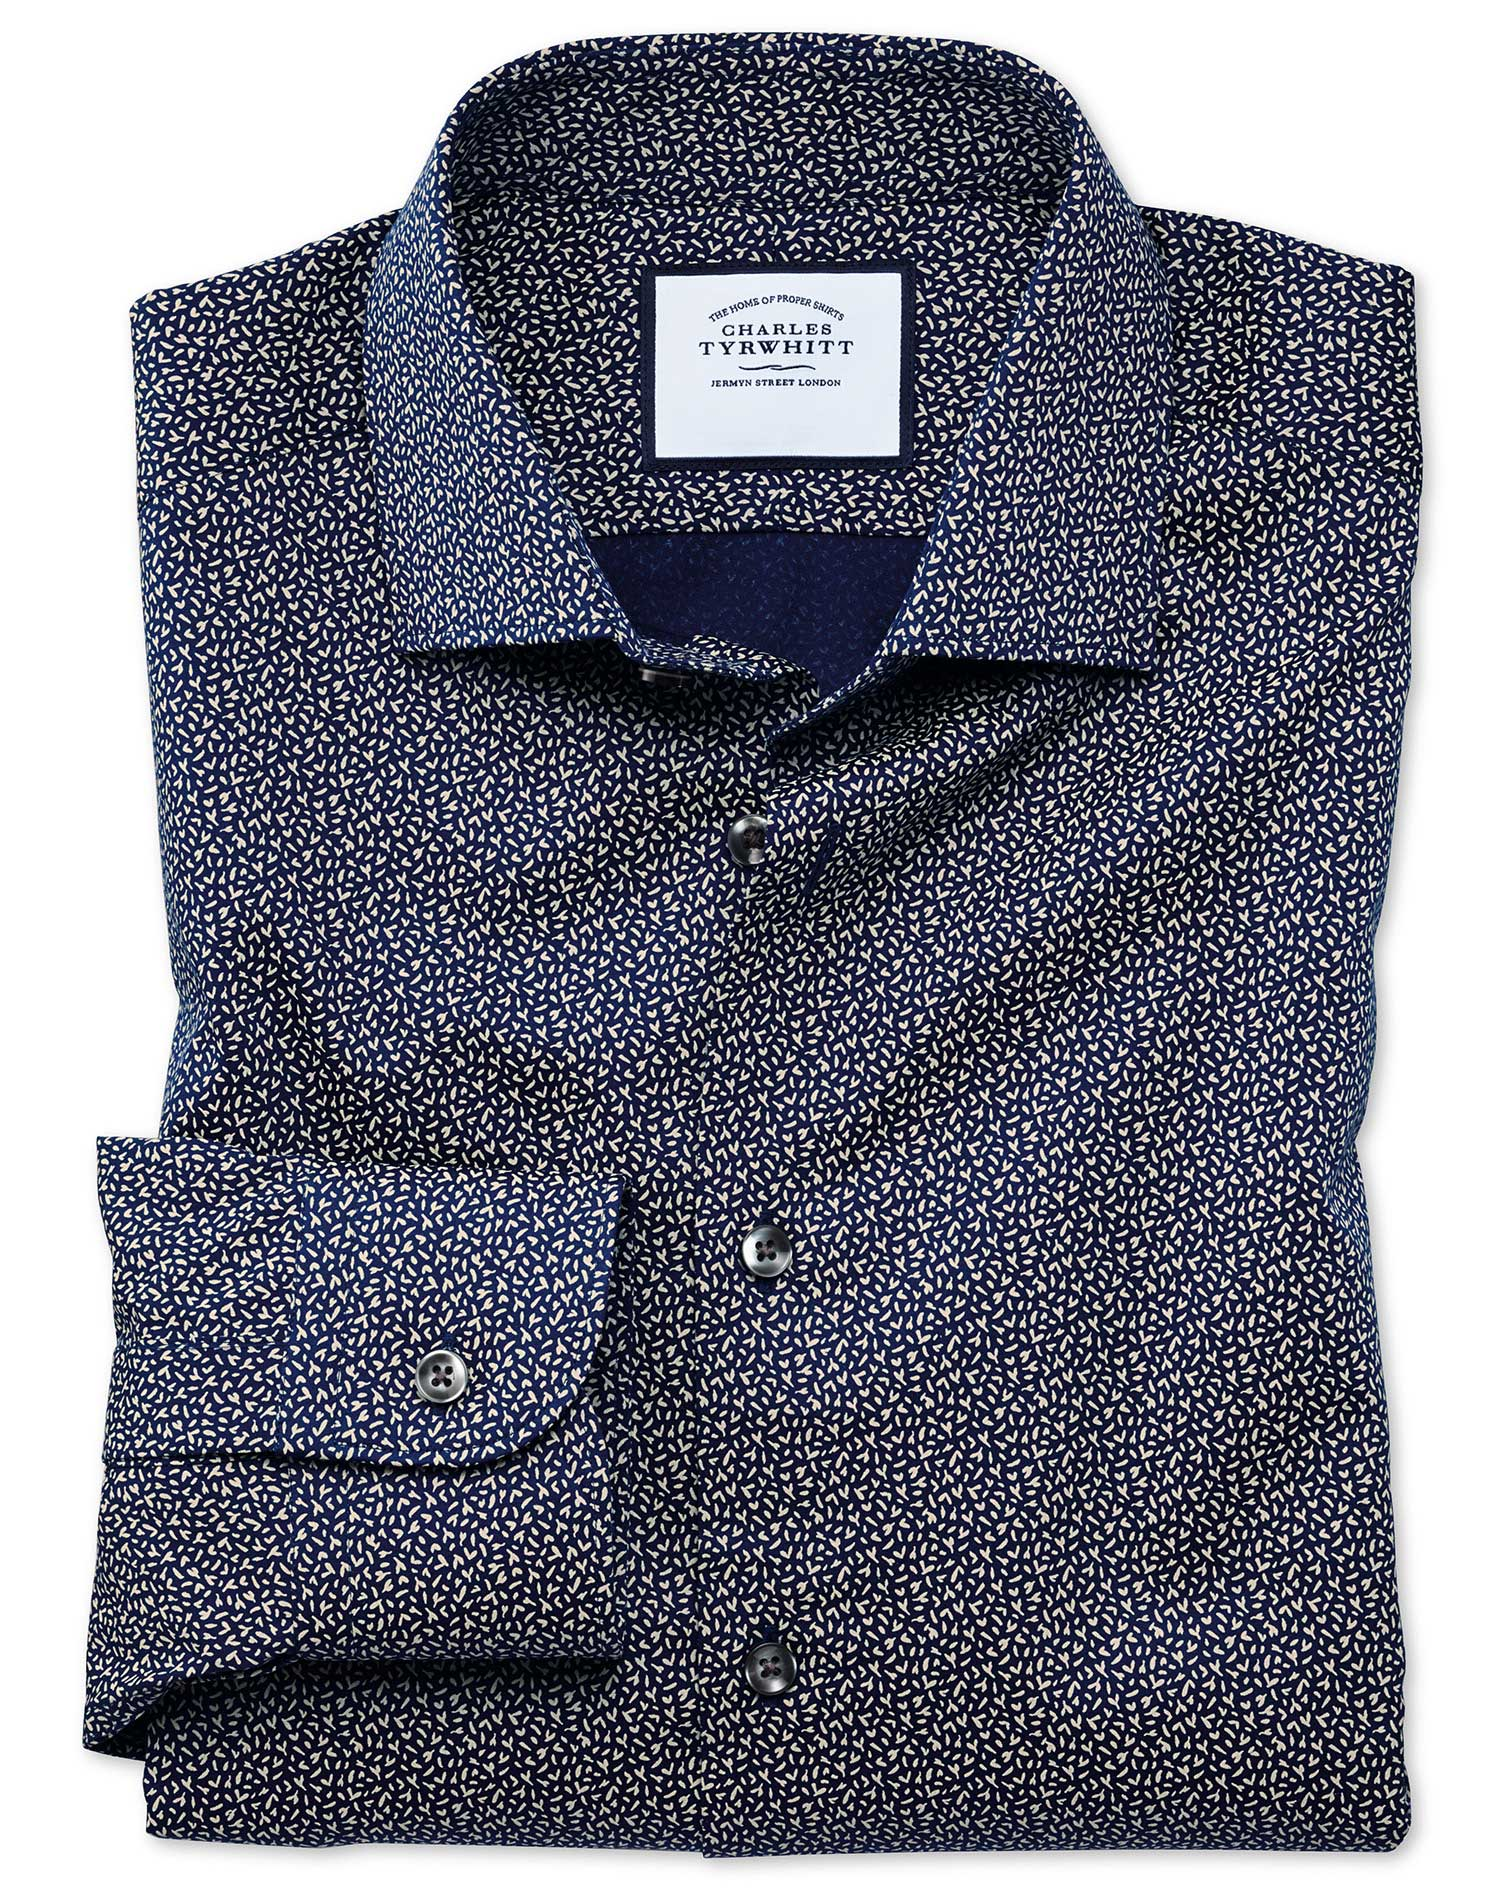 Slim Fit Business Casual Navy and White Print Cotton Formal Shirt Single Cuff Size 15/35 by Charles